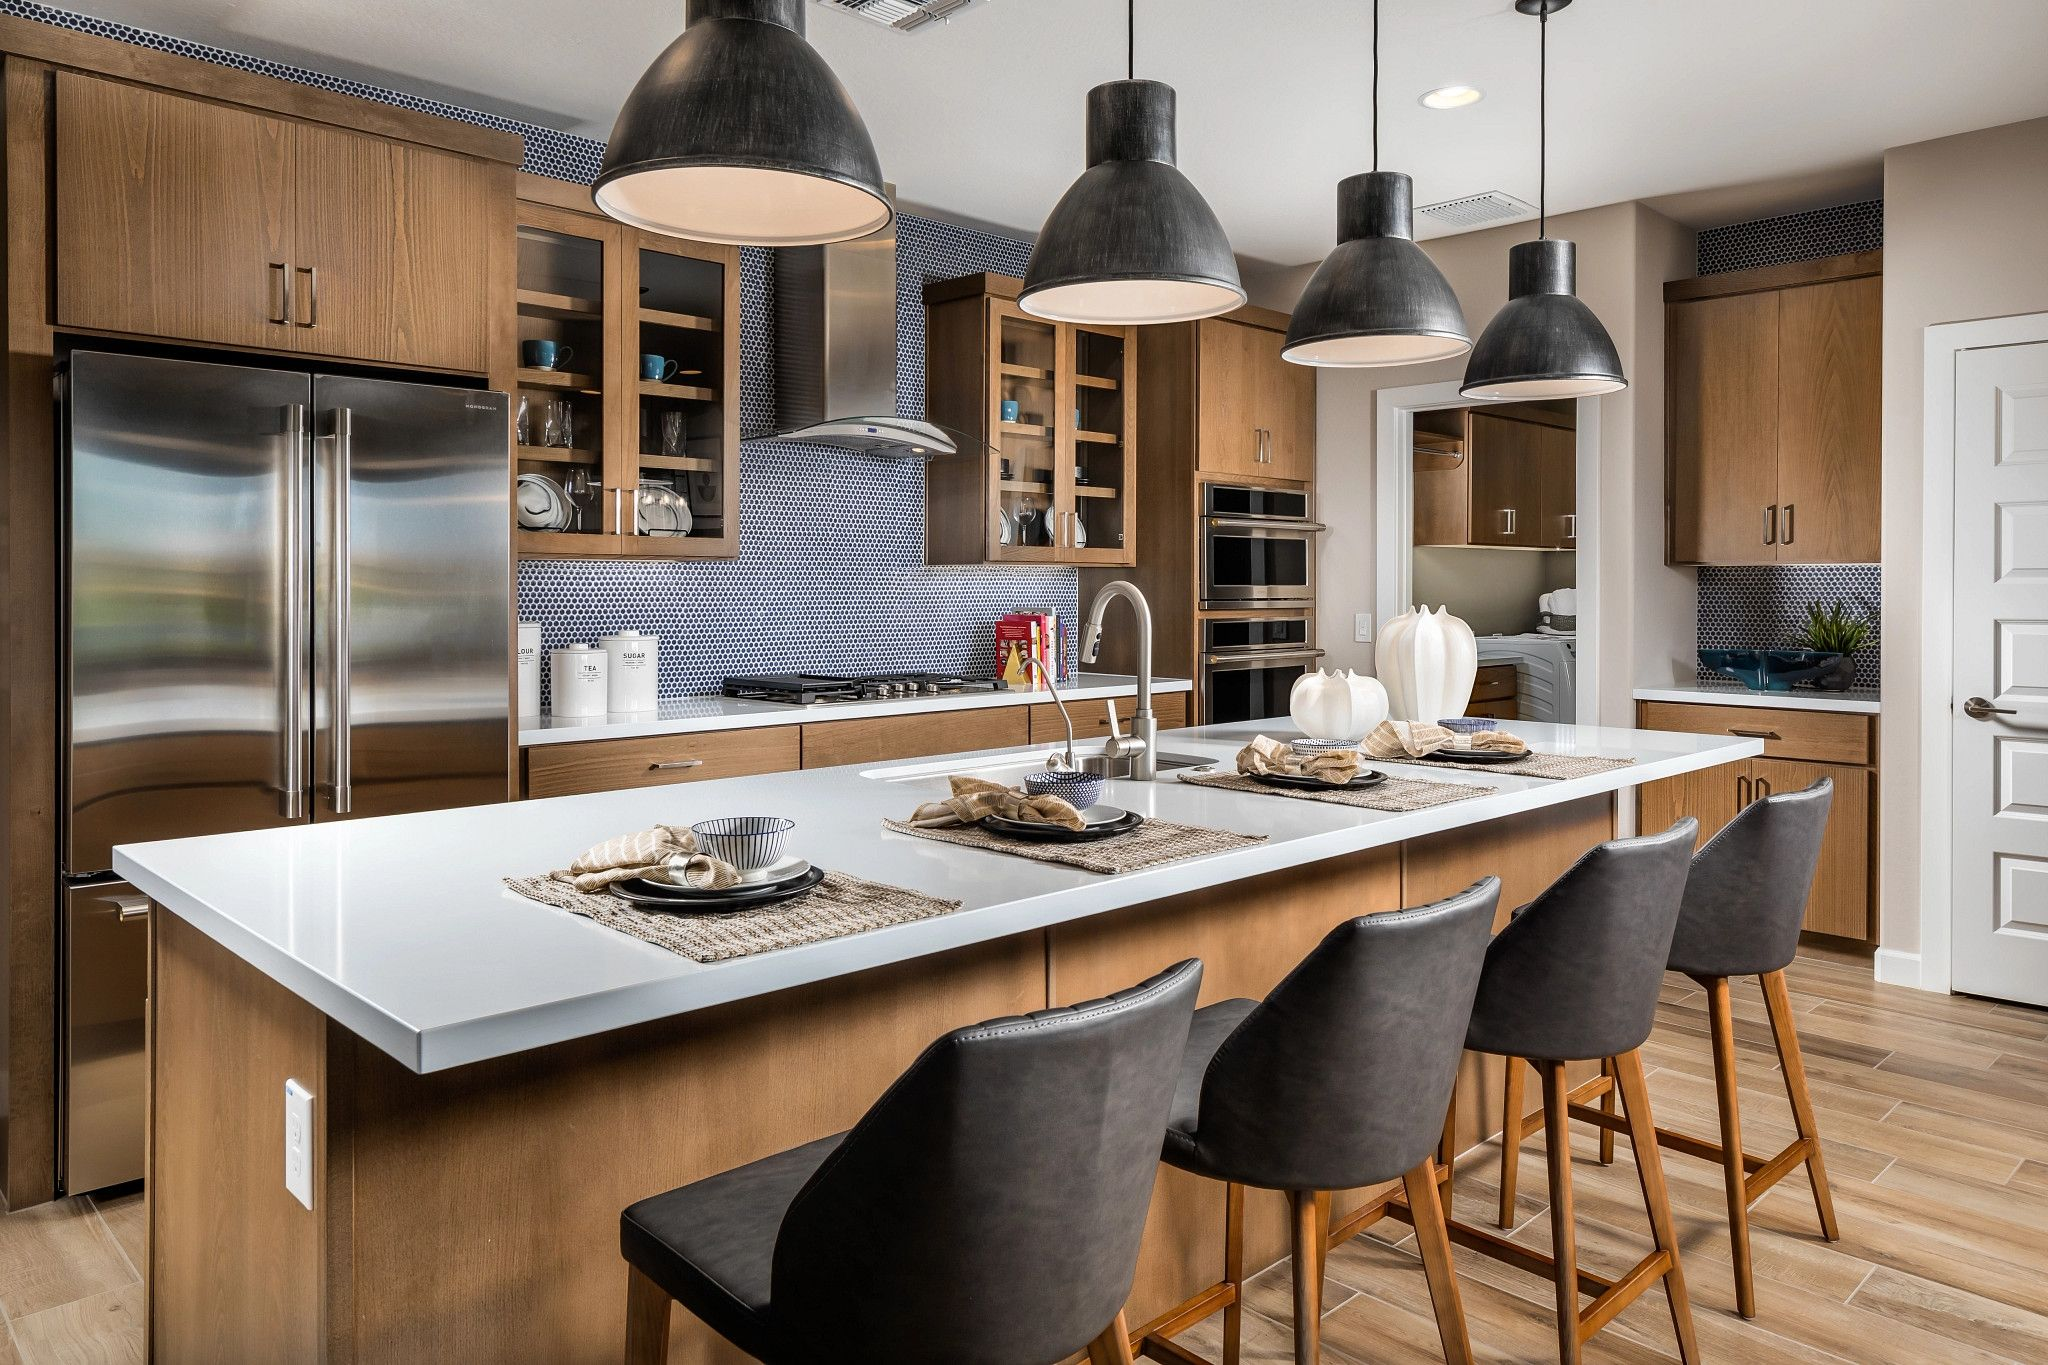 Kitchen featured in the Evia By Shea Homes - Trilogy in Phoenix-Mesa, AZ